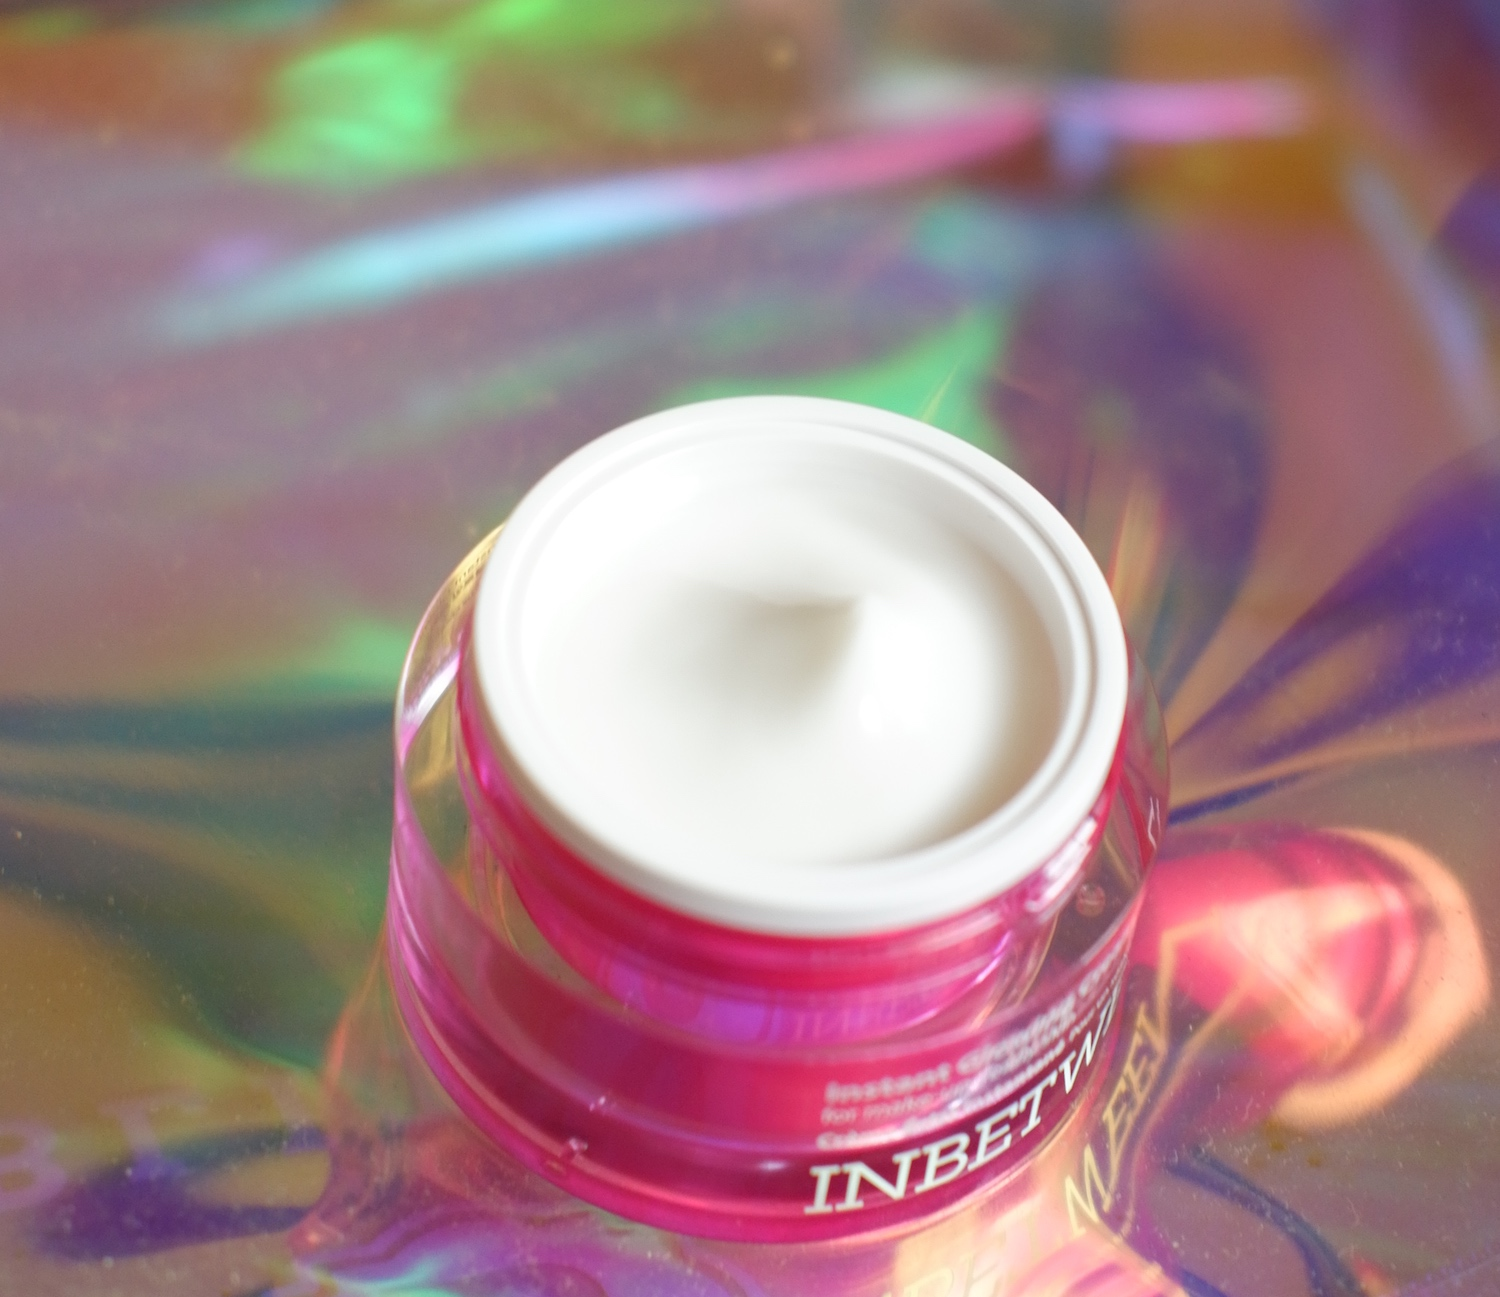 InBetween Instant Glowing Cream by blithe #8